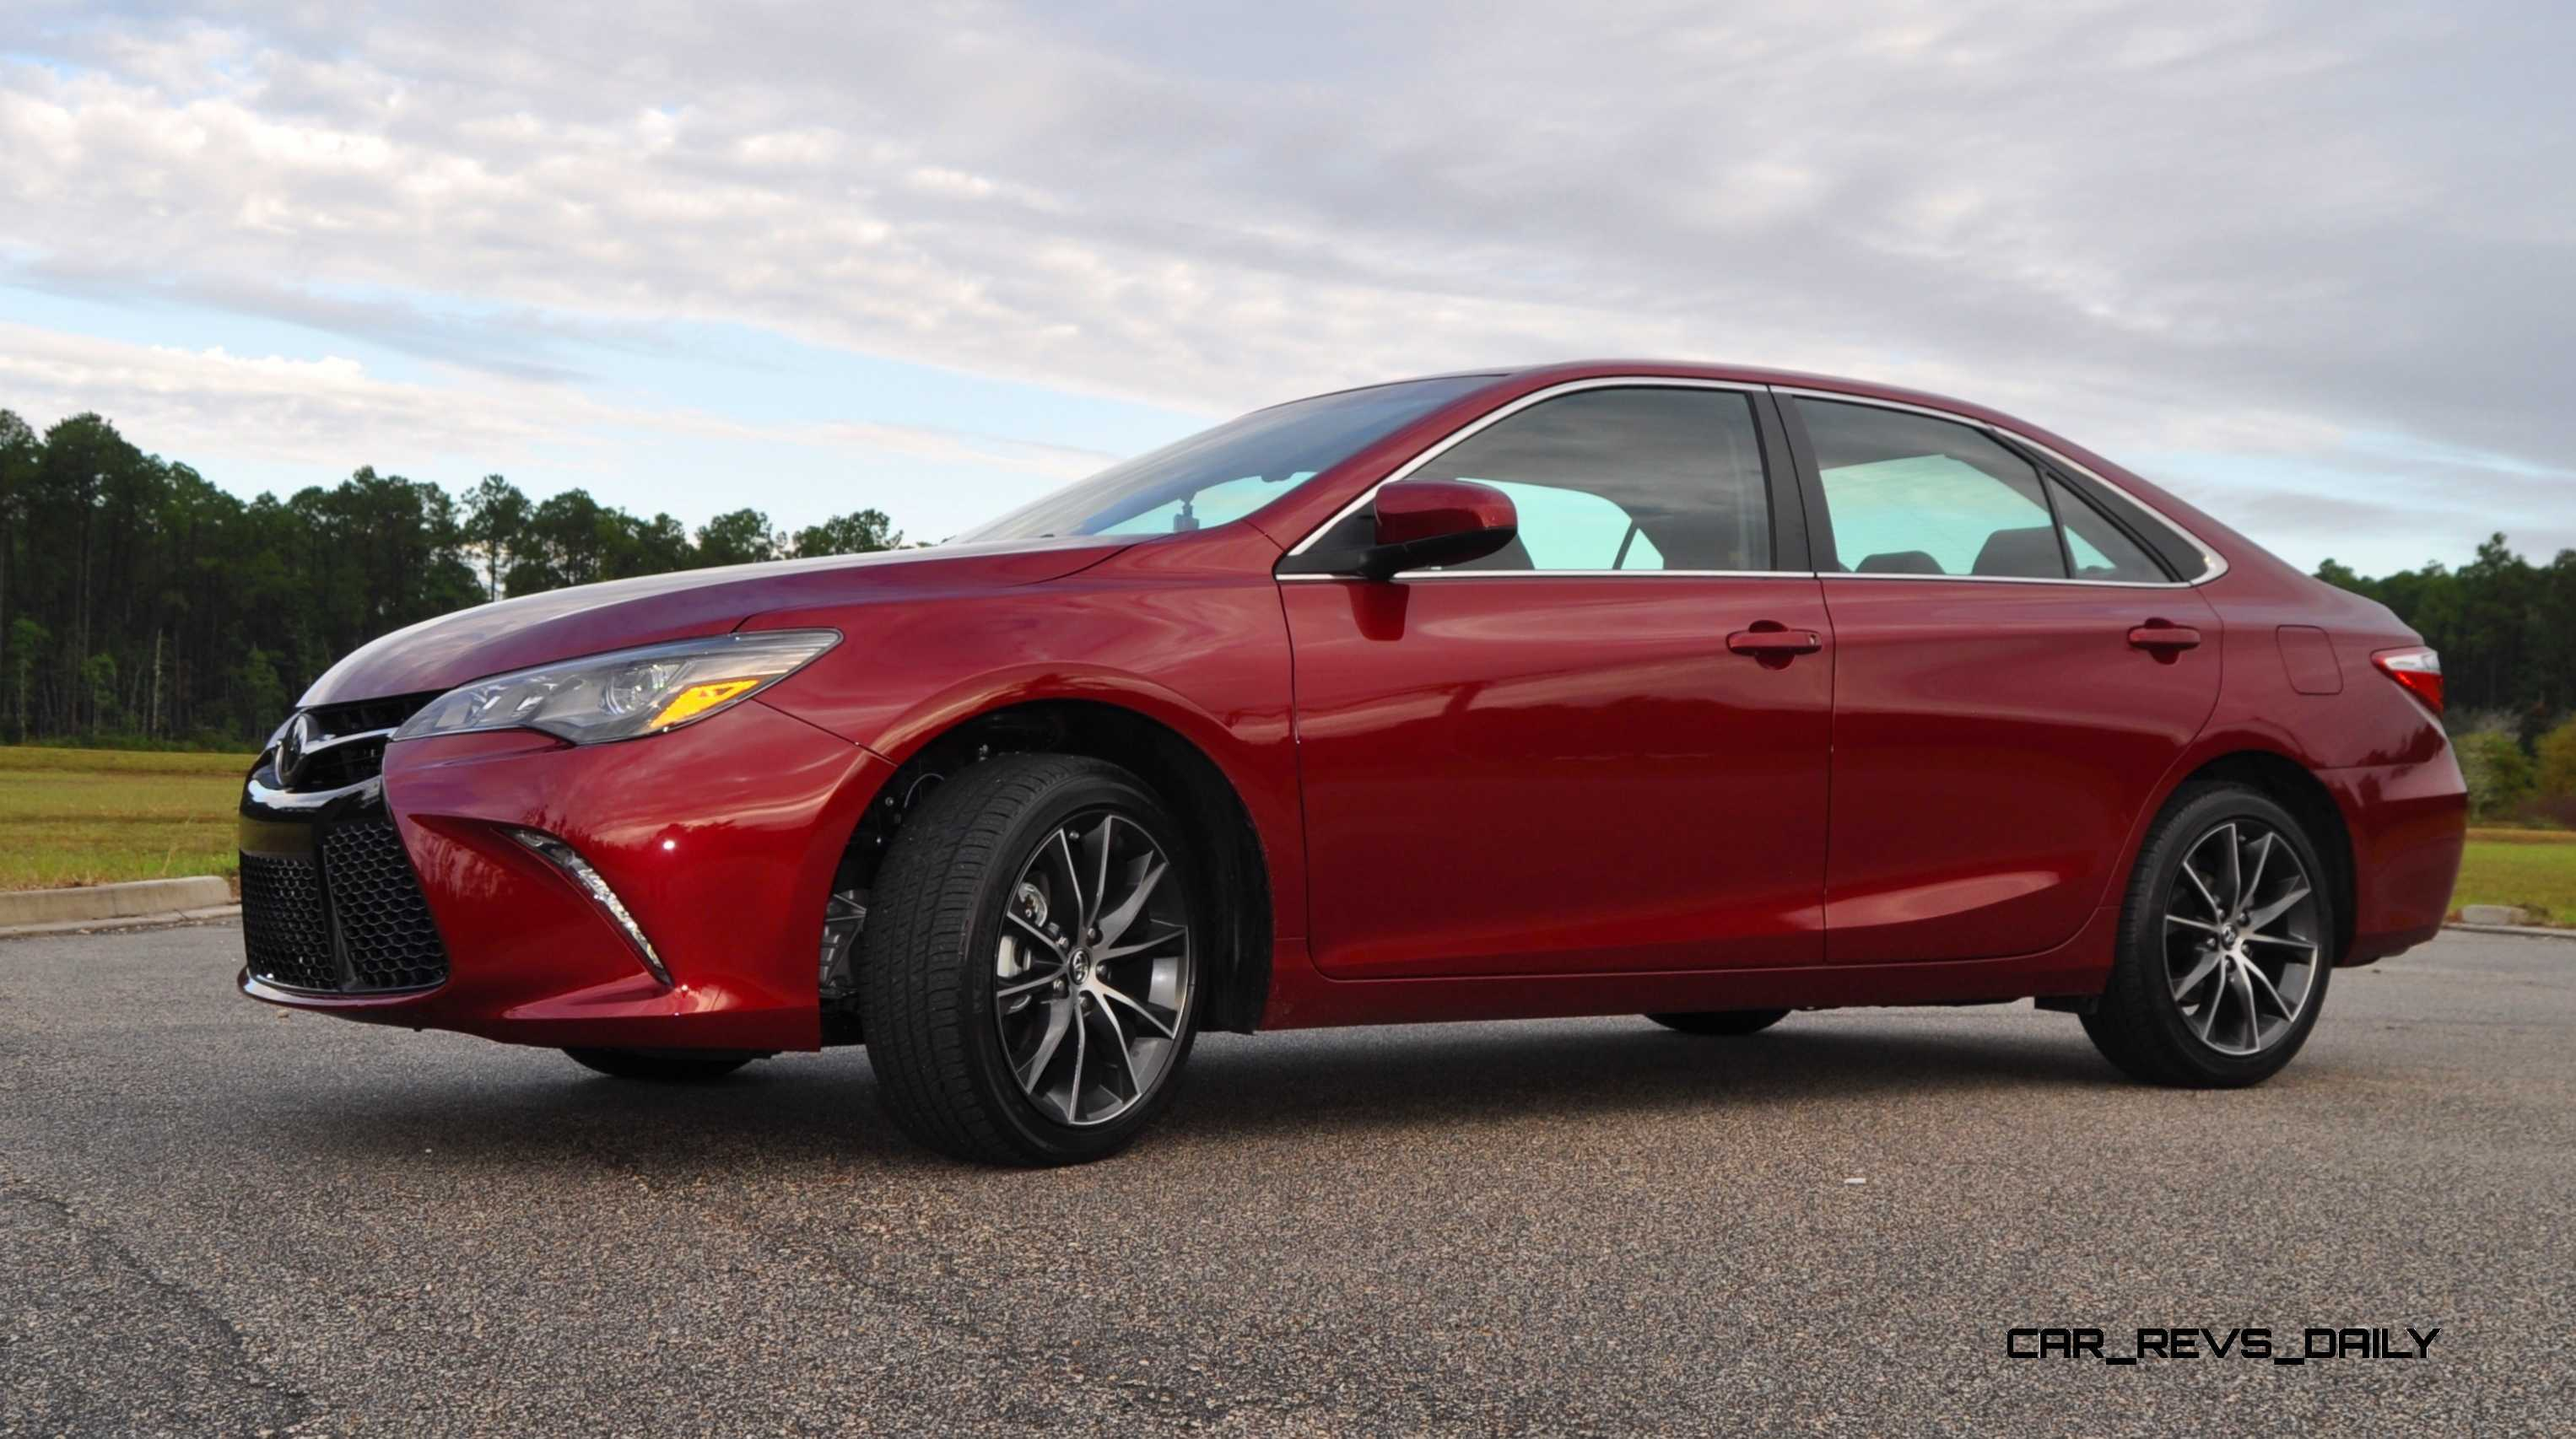 hd road test review 2015 toyota camry xse is fast and quiet. Black Bedroom Furniture Sets. Home Design Ideas